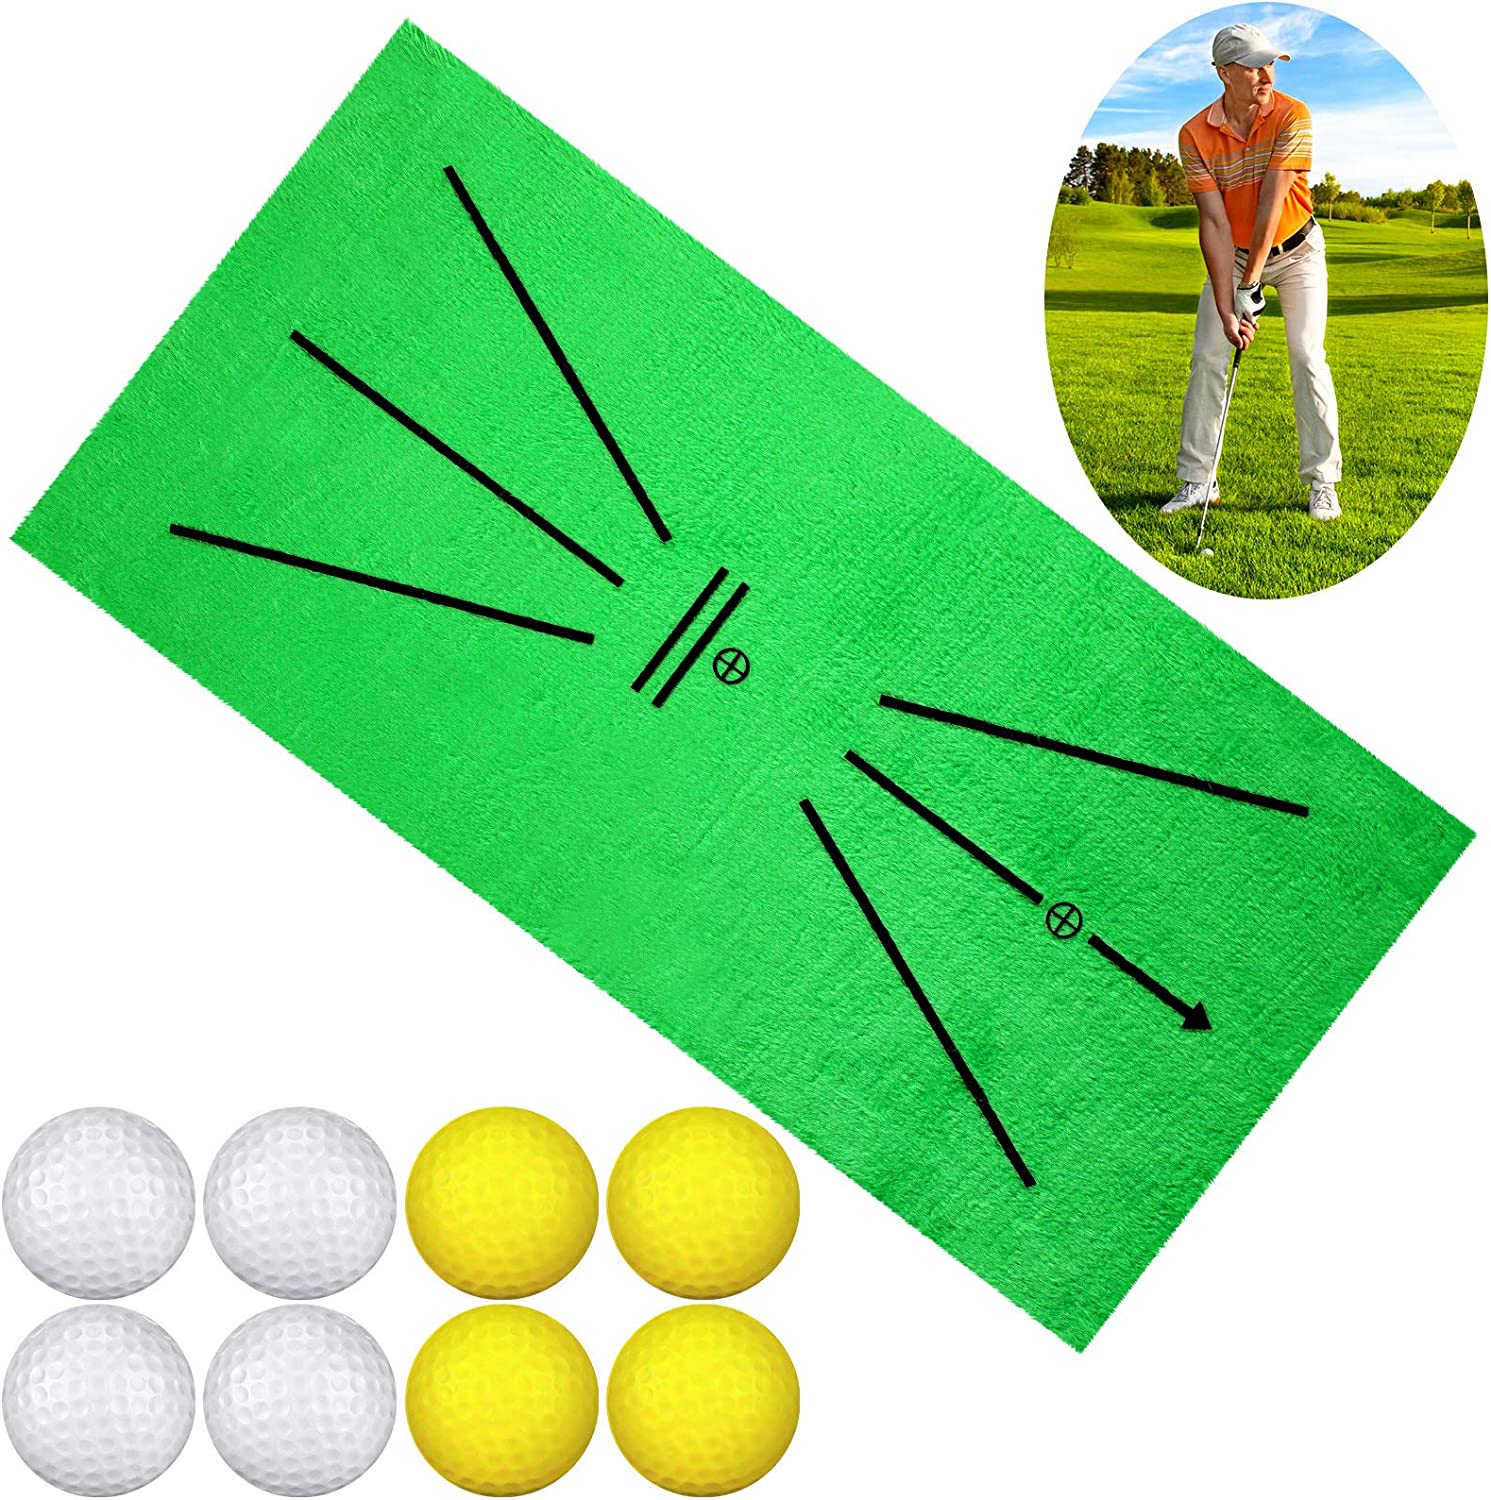 Golf Training Set Include 1 4 Trai New life Department store Mat Yellow